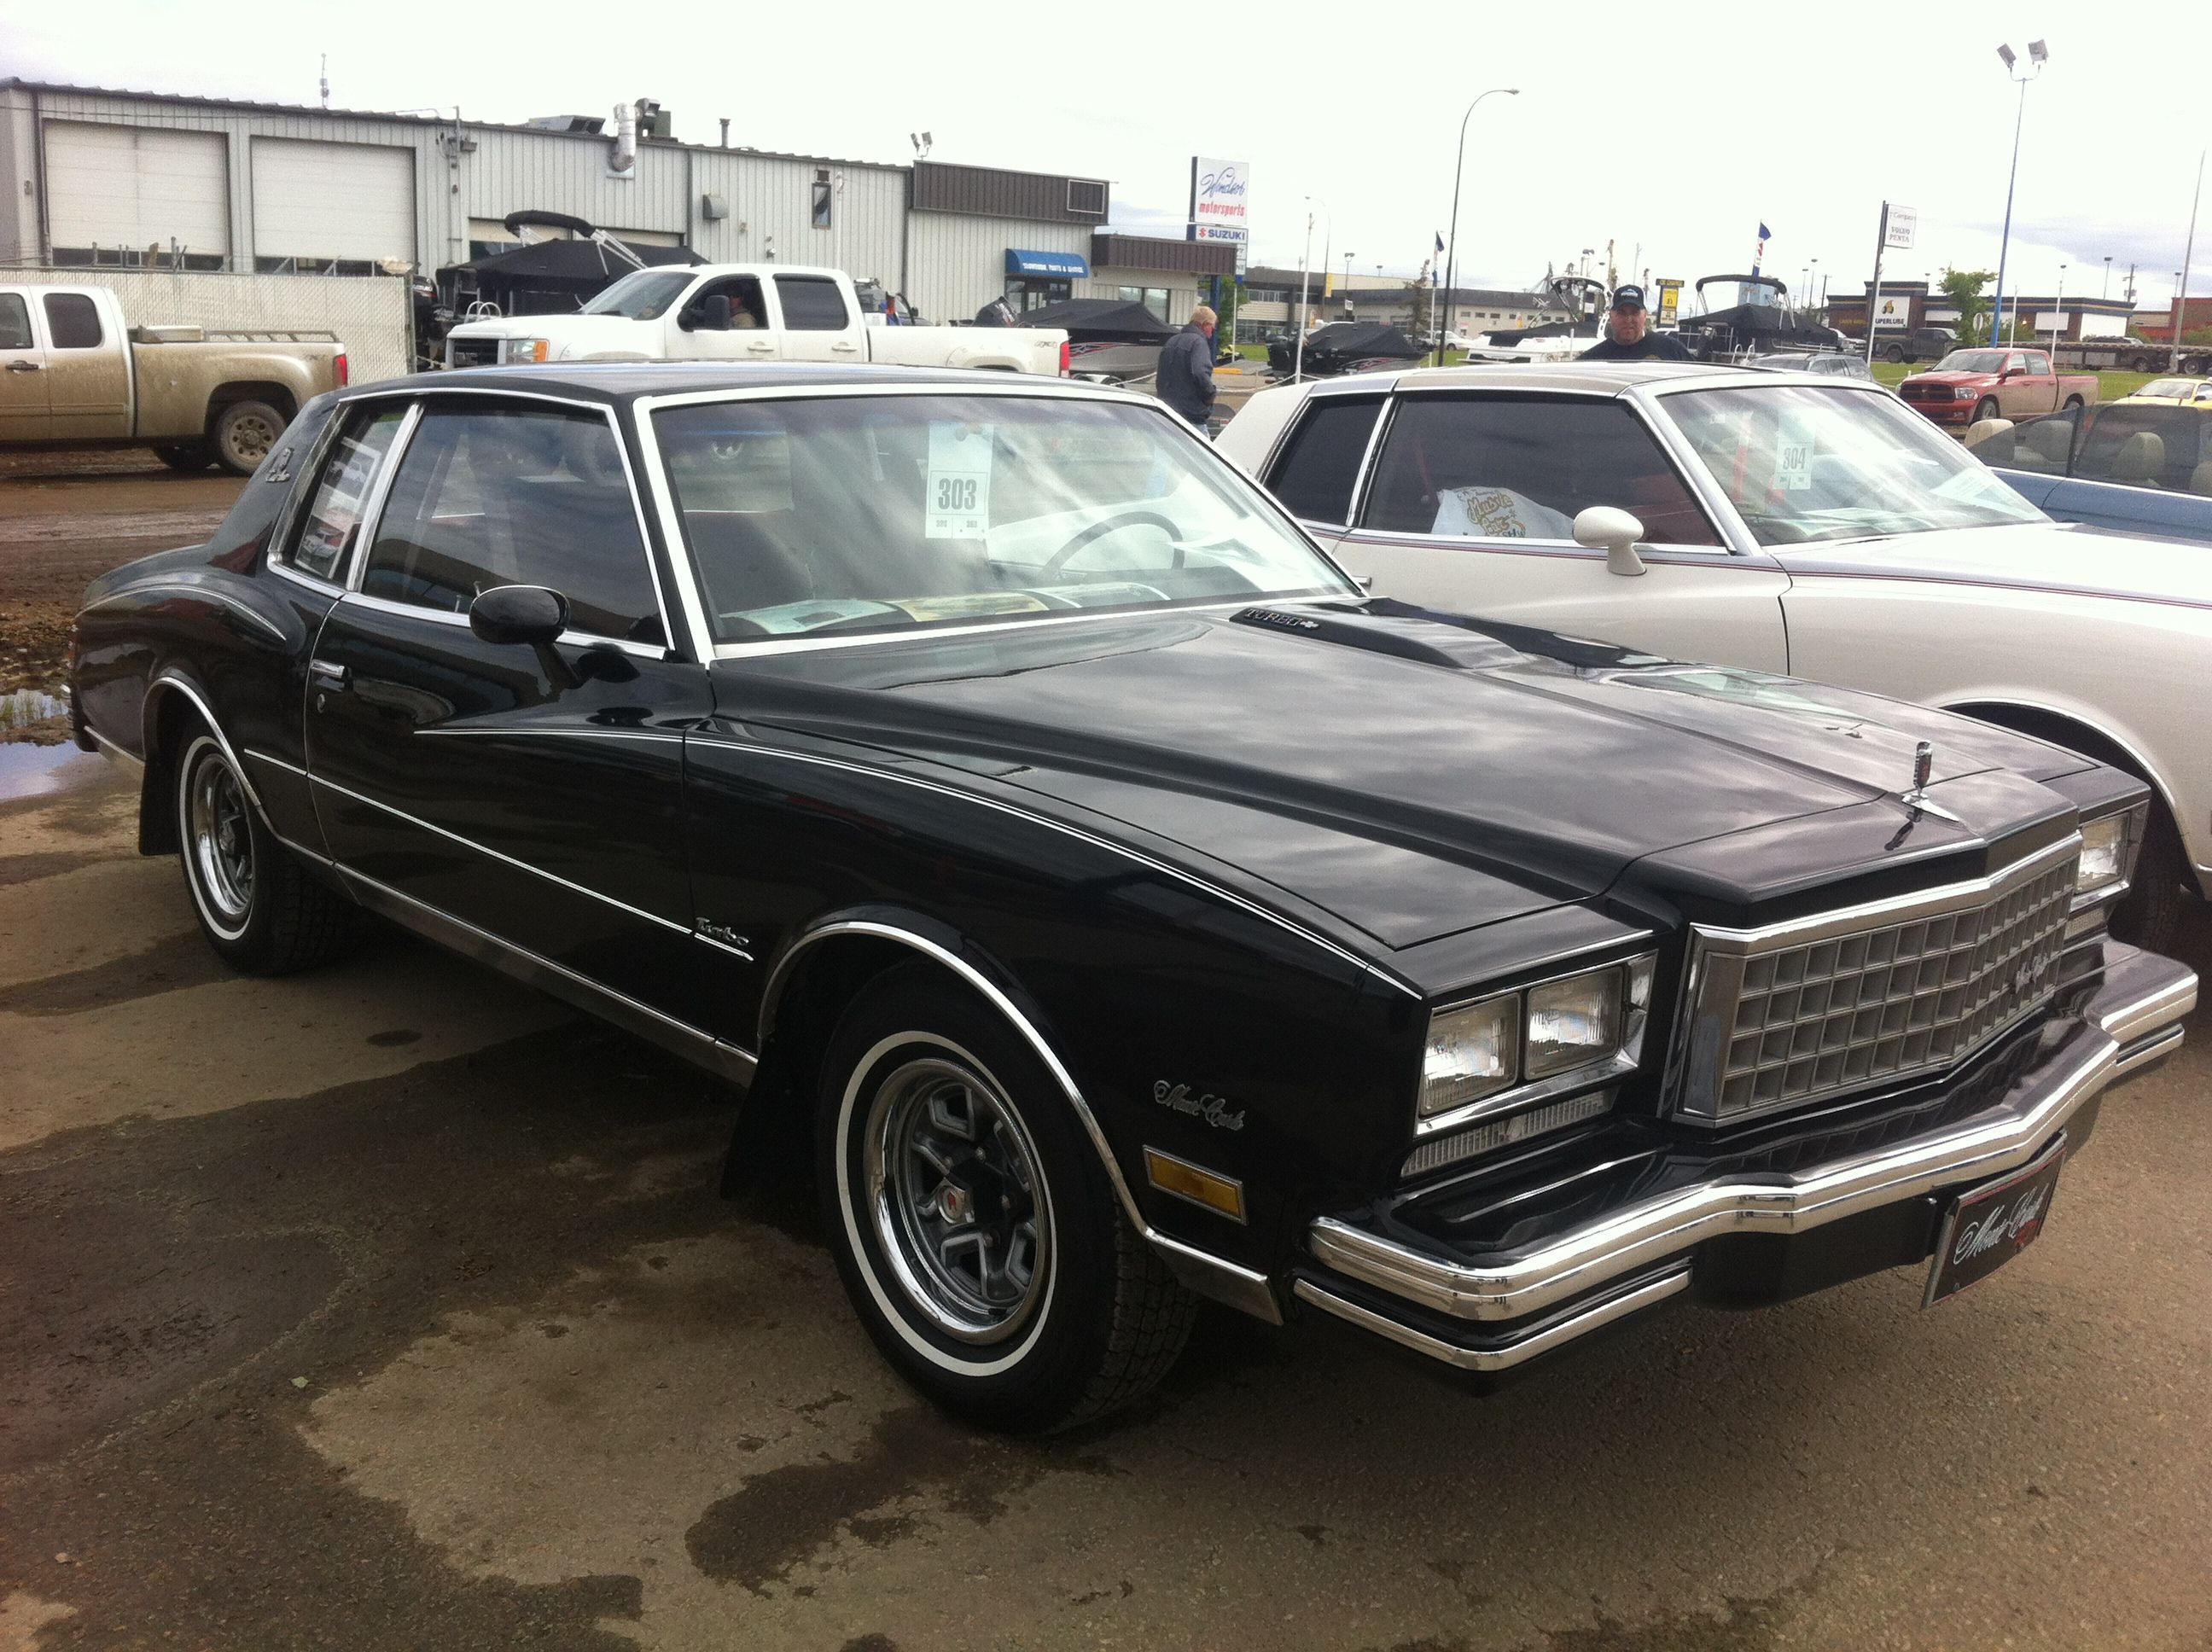 1980 monte carlo my first car purchase relivin 39 youth. Black Bedroom Furniture Sets. Home Design Ideas